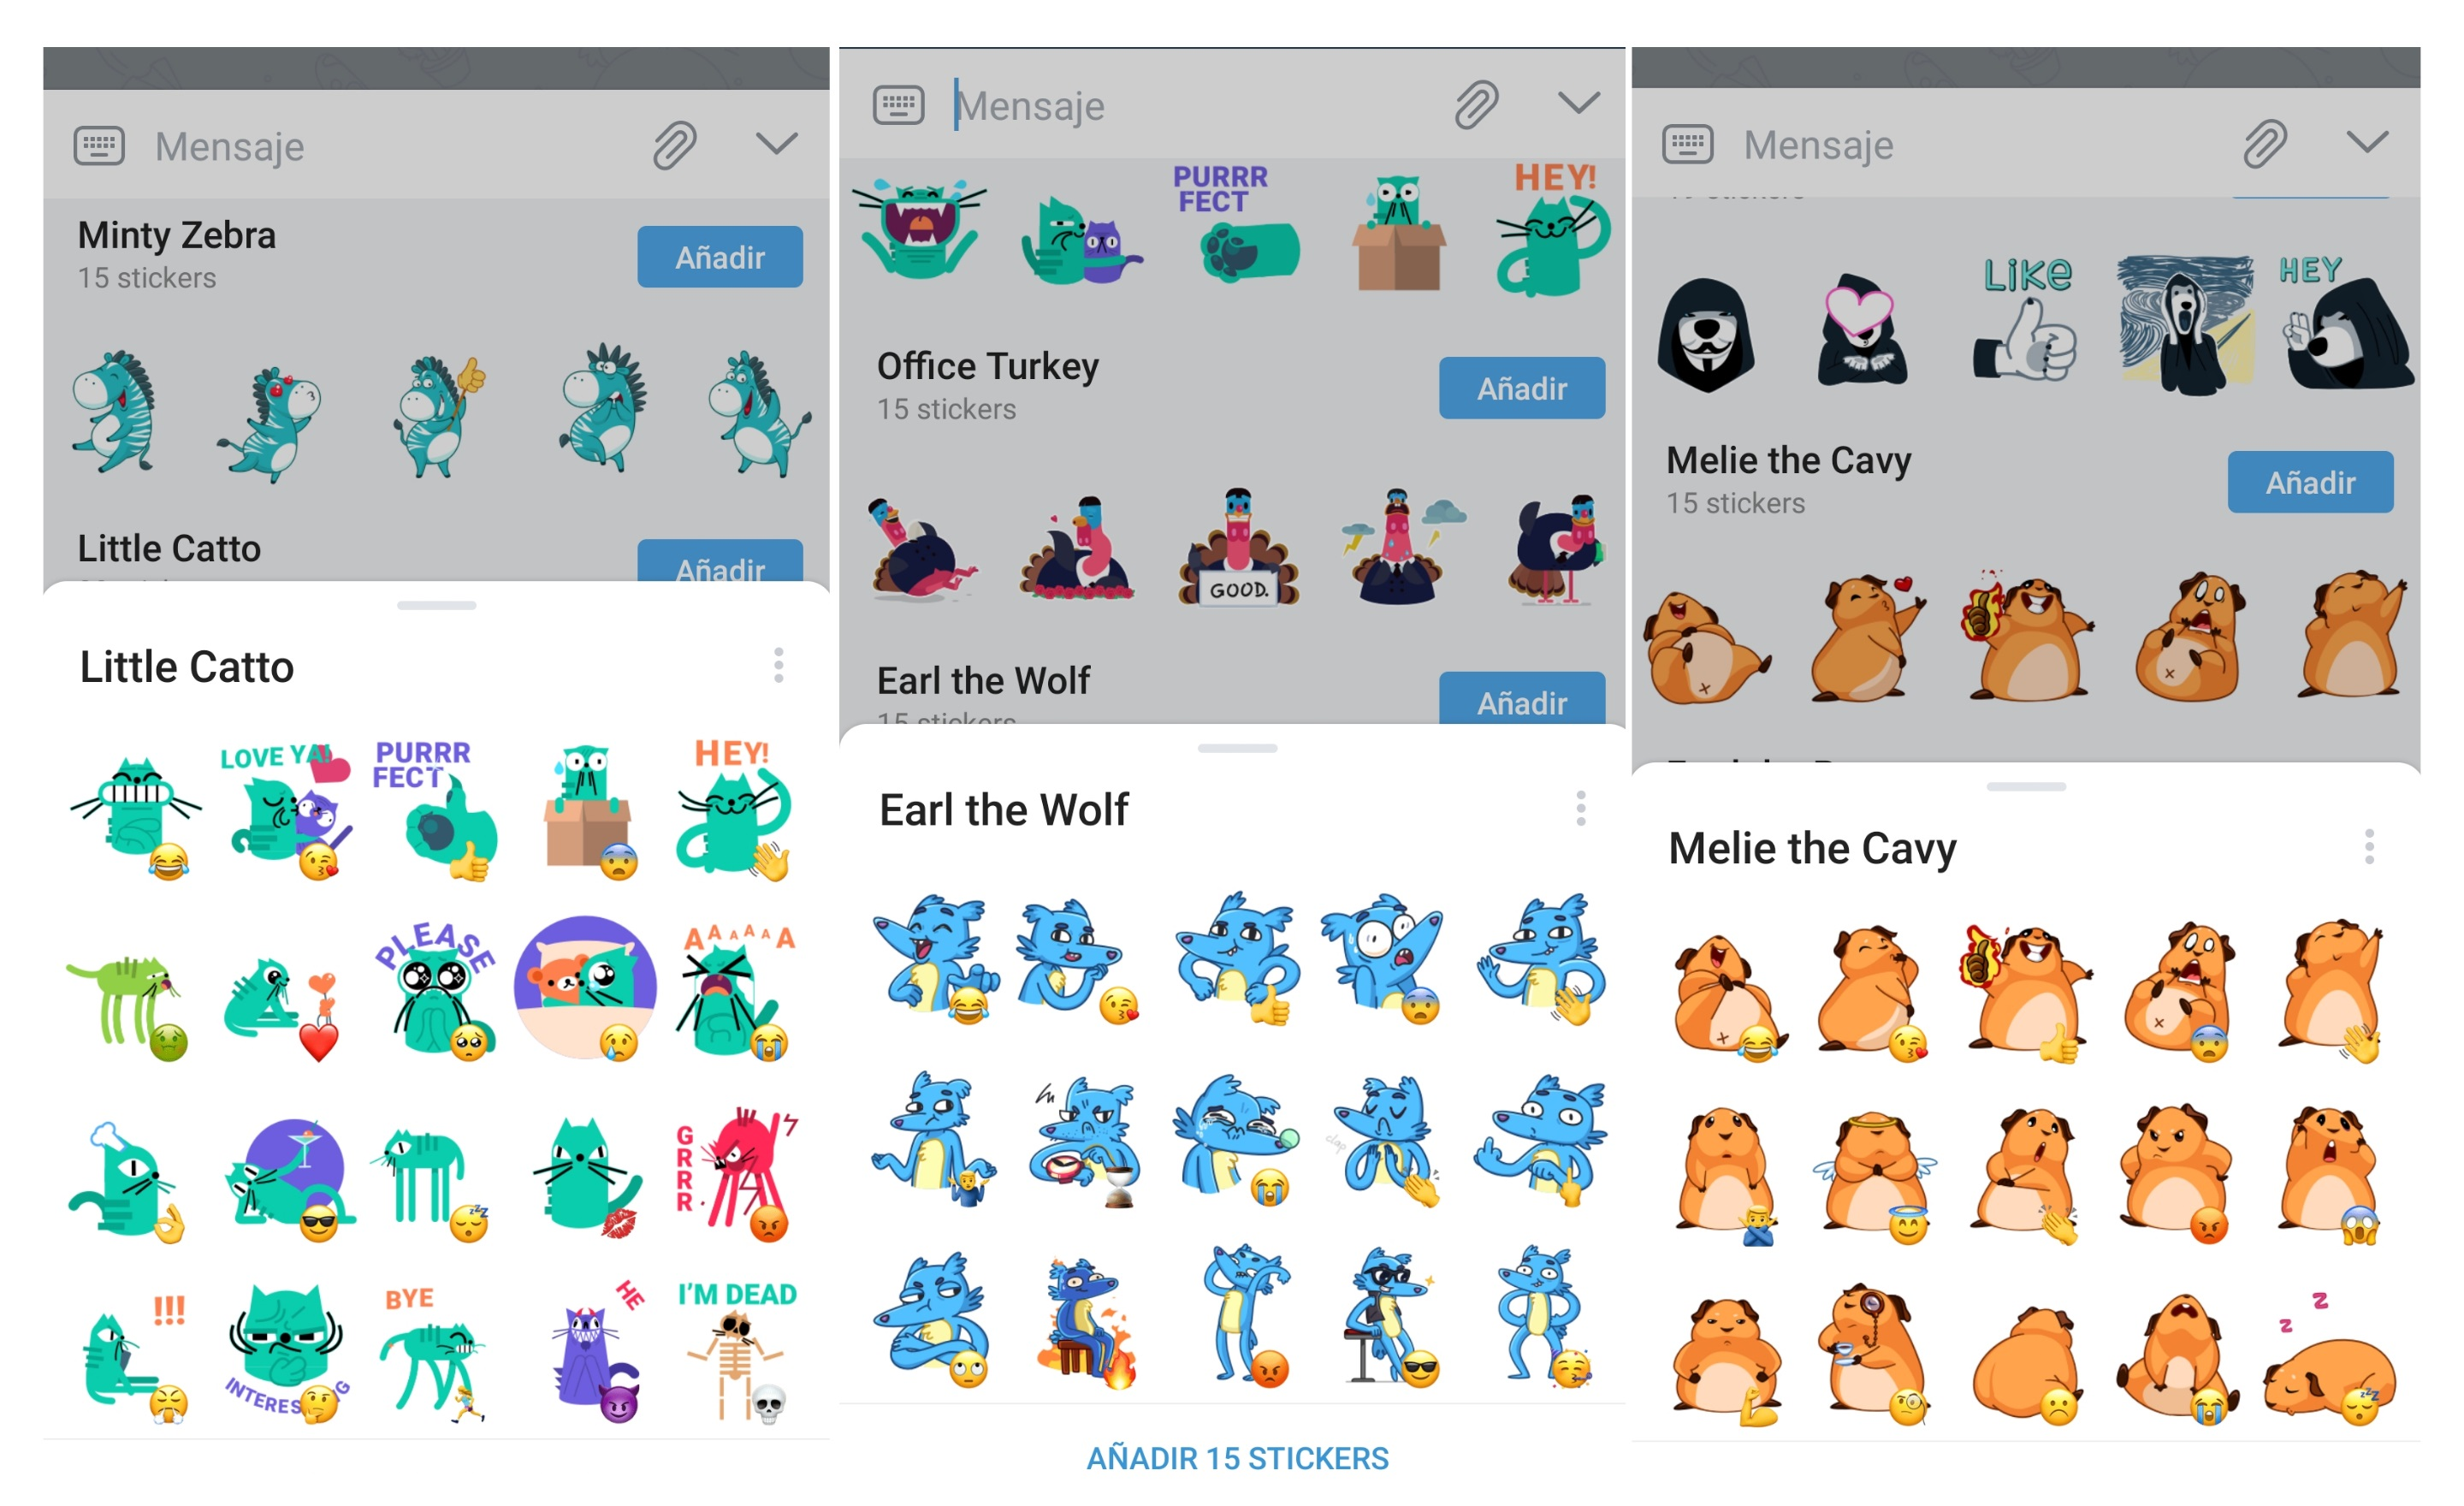 Stickers Animados De Telegram